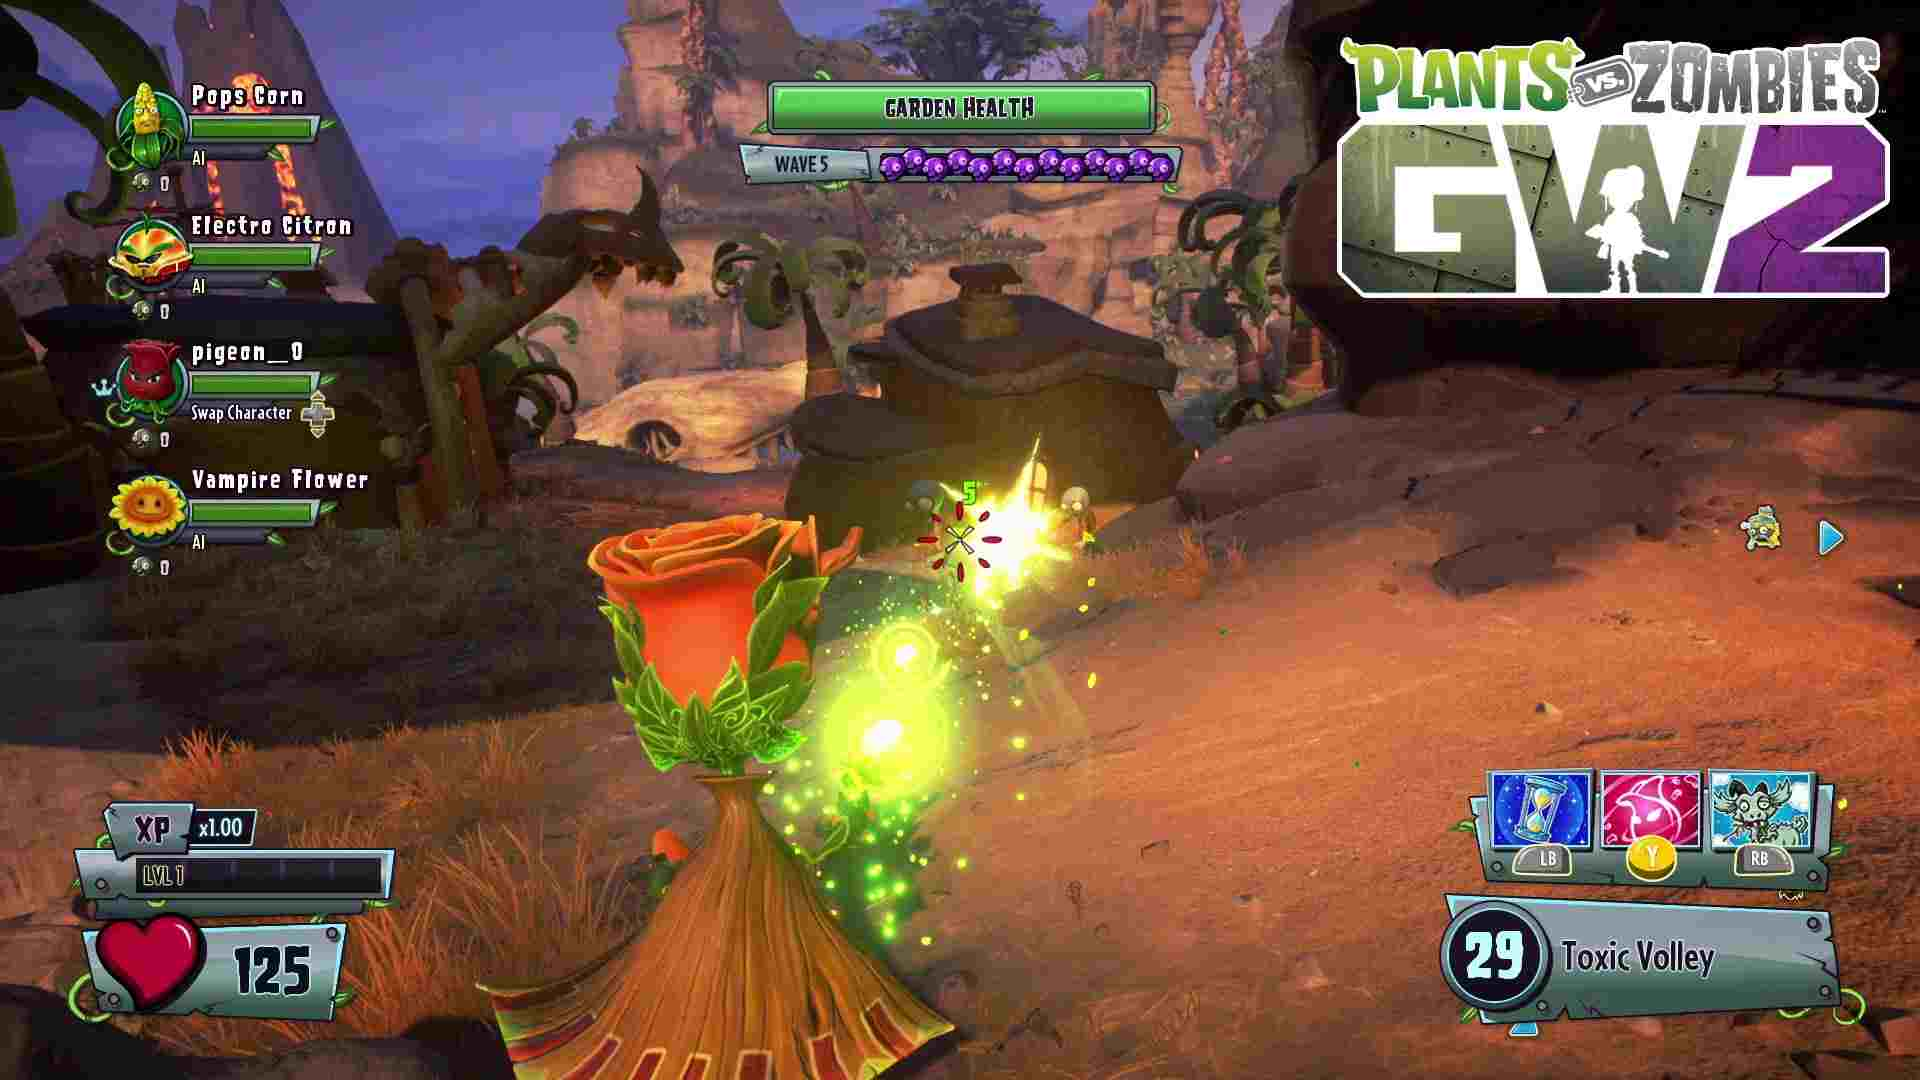 plants vs zombies garden warfare 2 new achievements